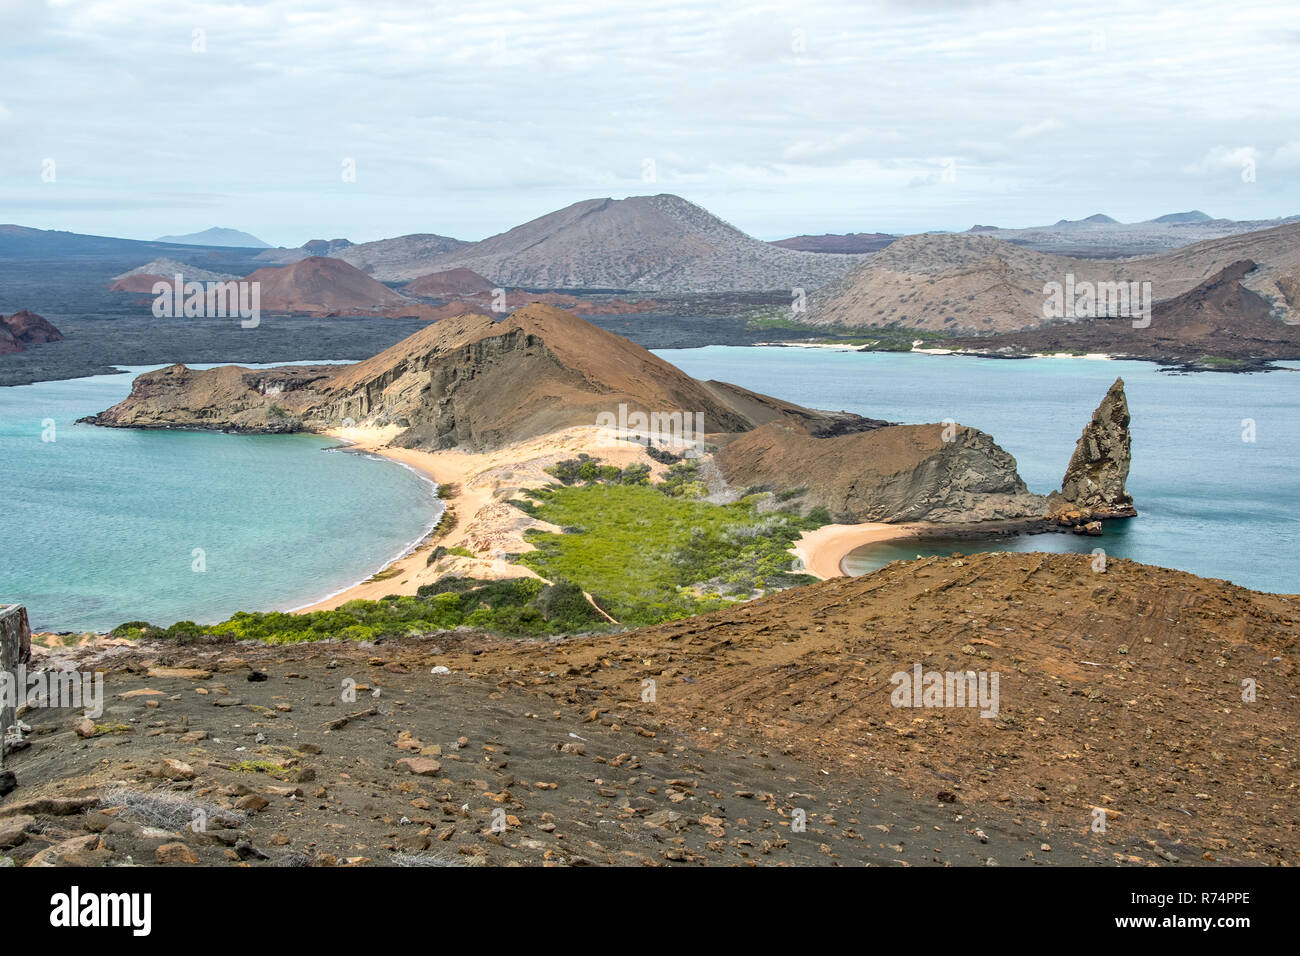 Panorama on the lava pinnacle and Santiago Island seen from the summit of Bartolome Island crater, Galapagos Islands - Stock Image